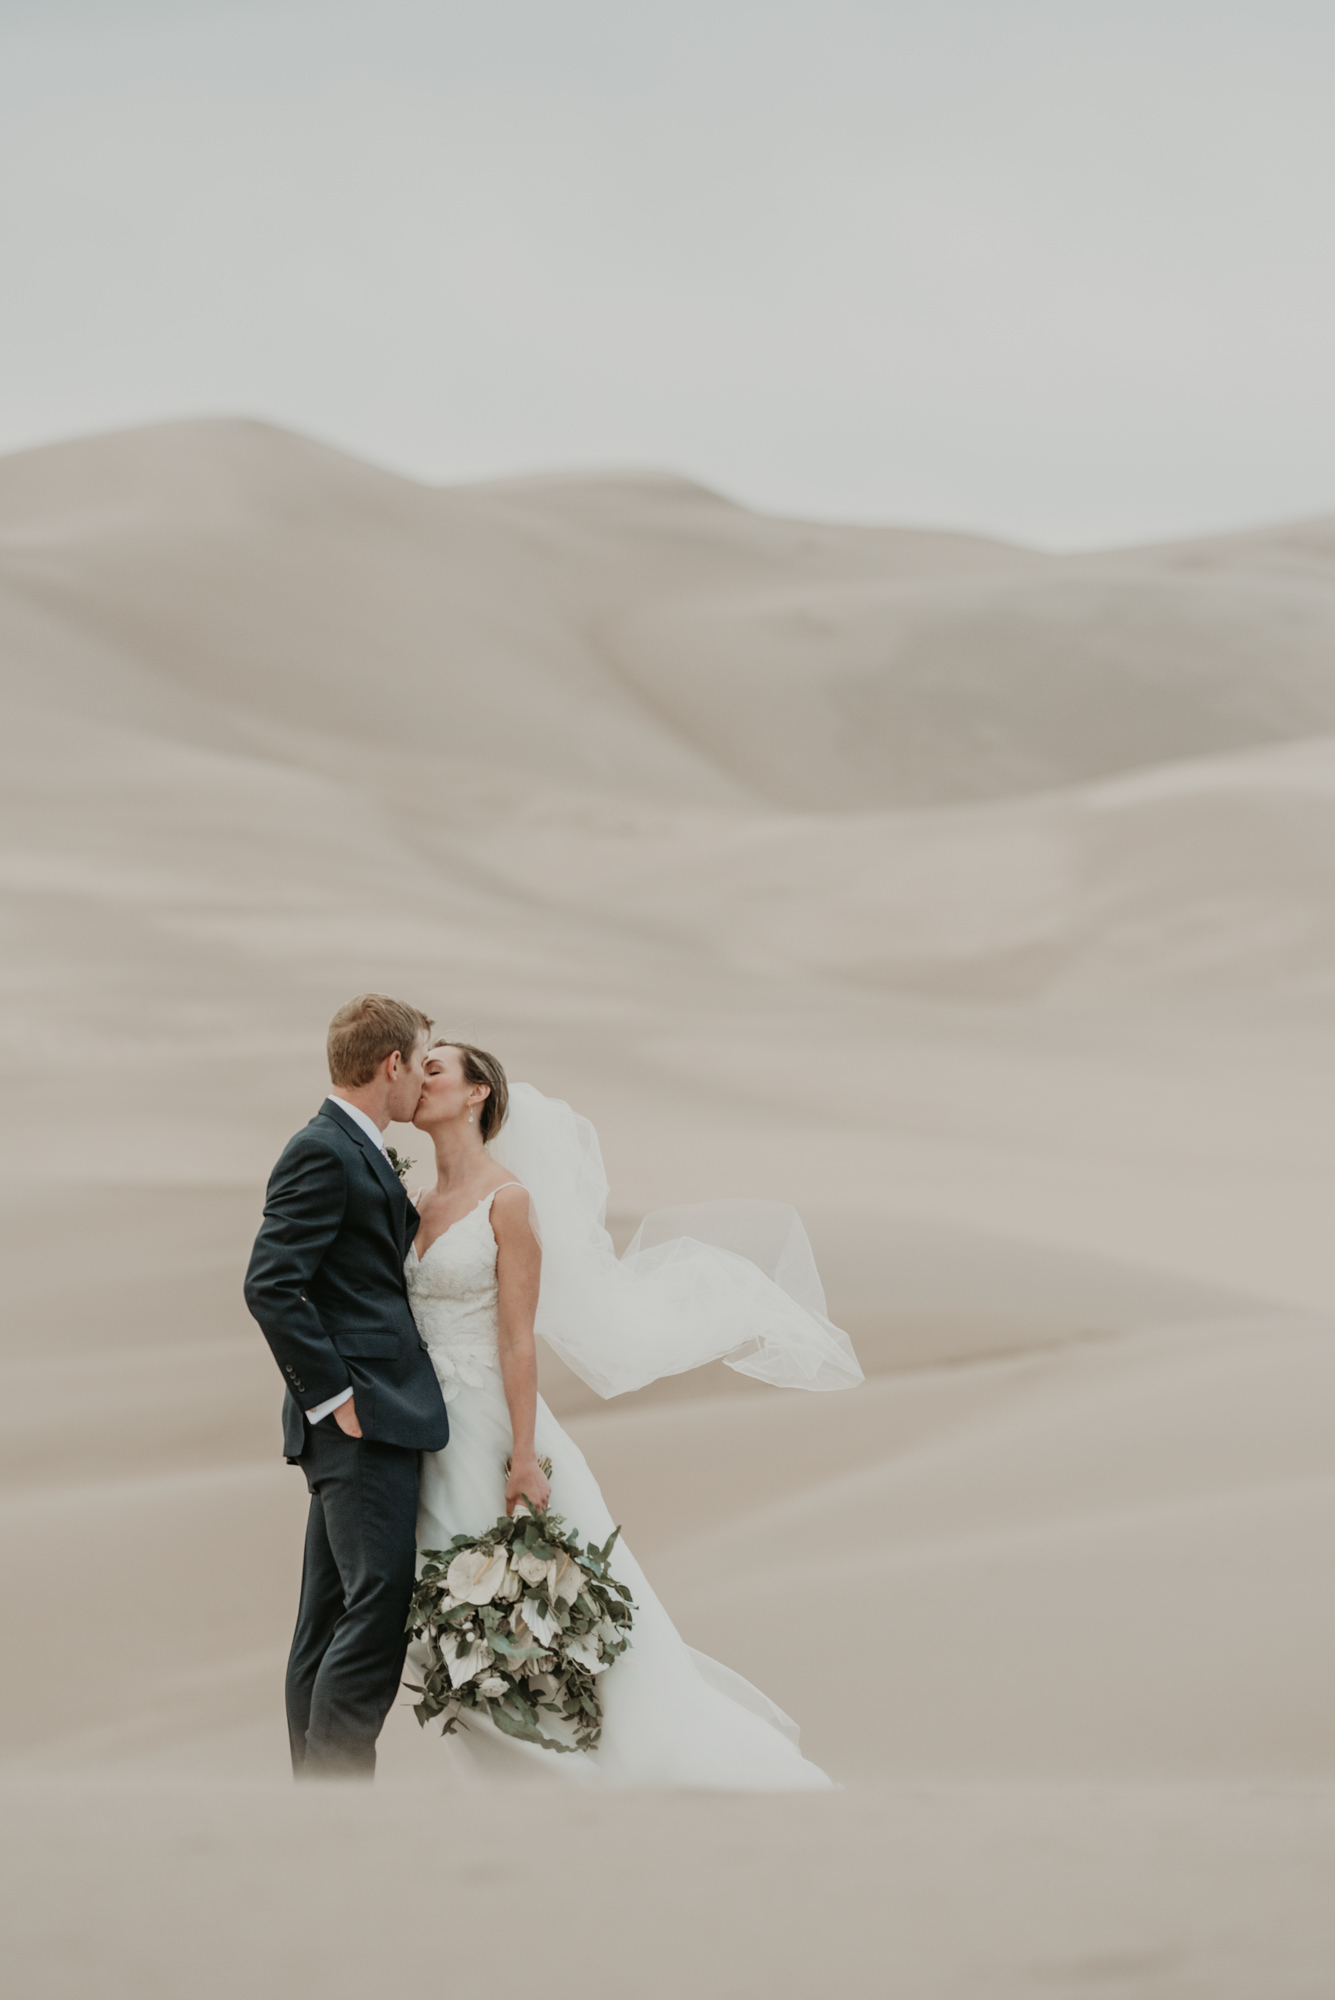 Brittany and Eric share a kiss with the Sand Dunes in the background.